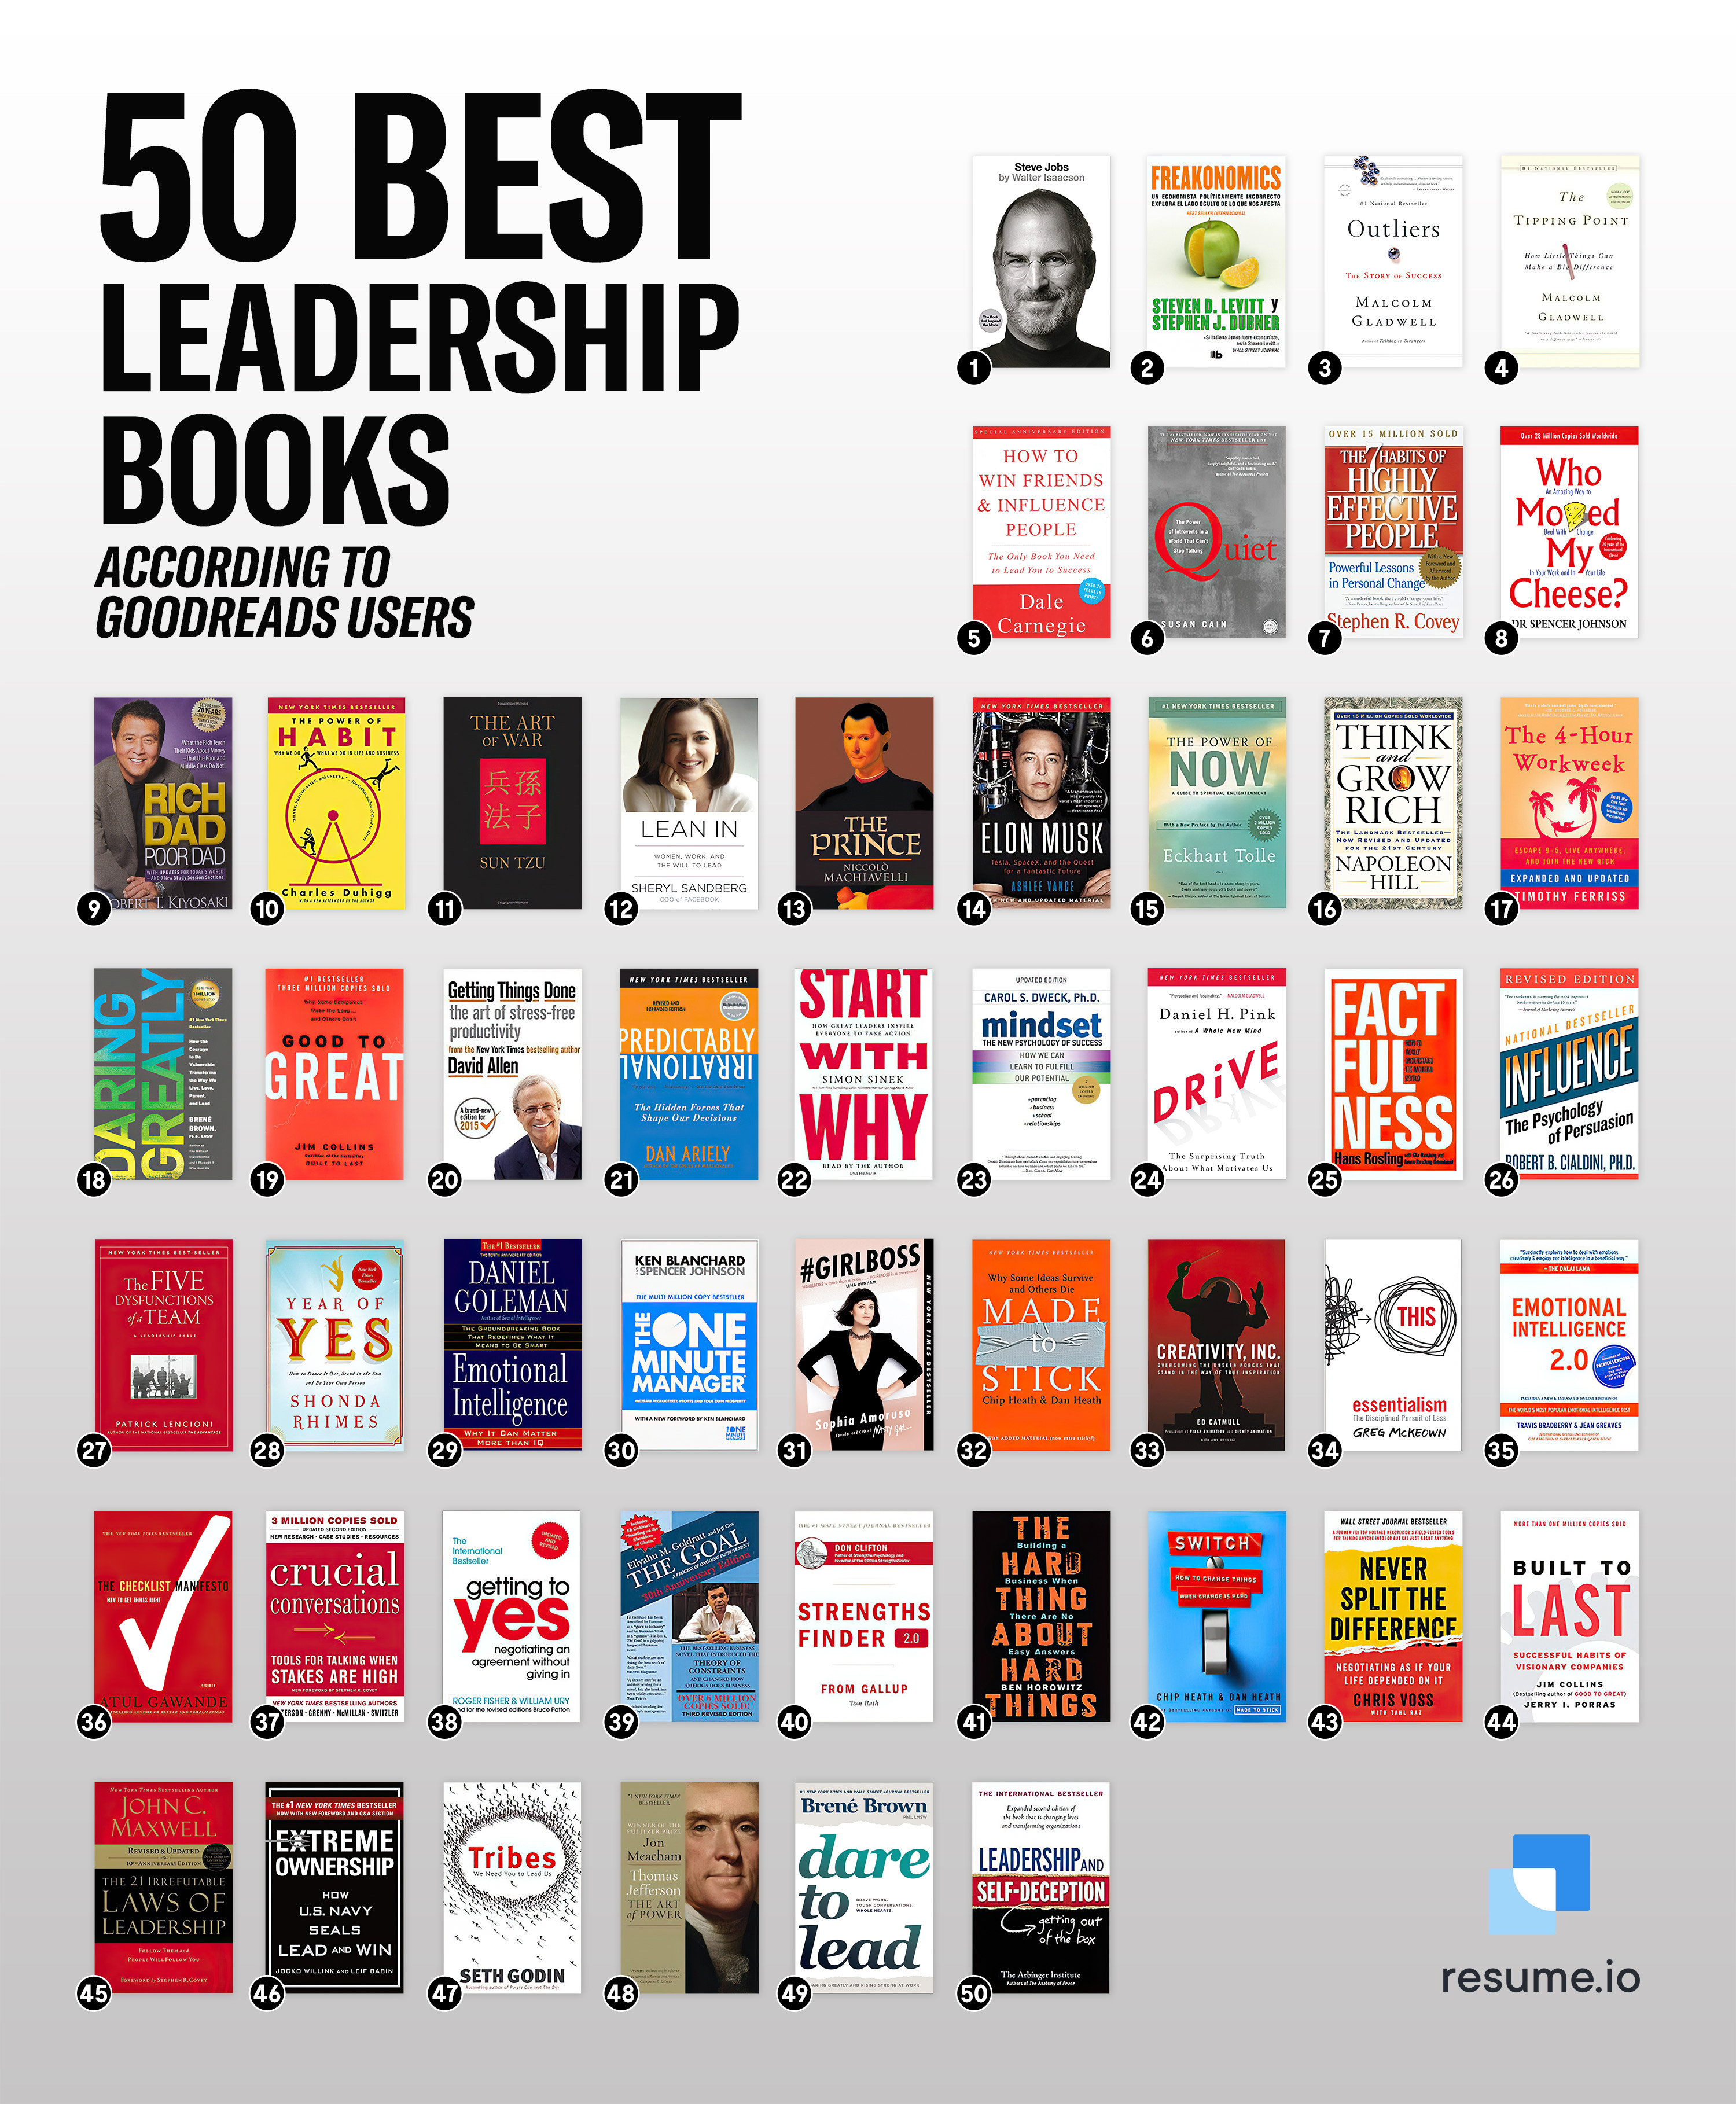 How to Find the Right Book to Inspire Your Leadership Style